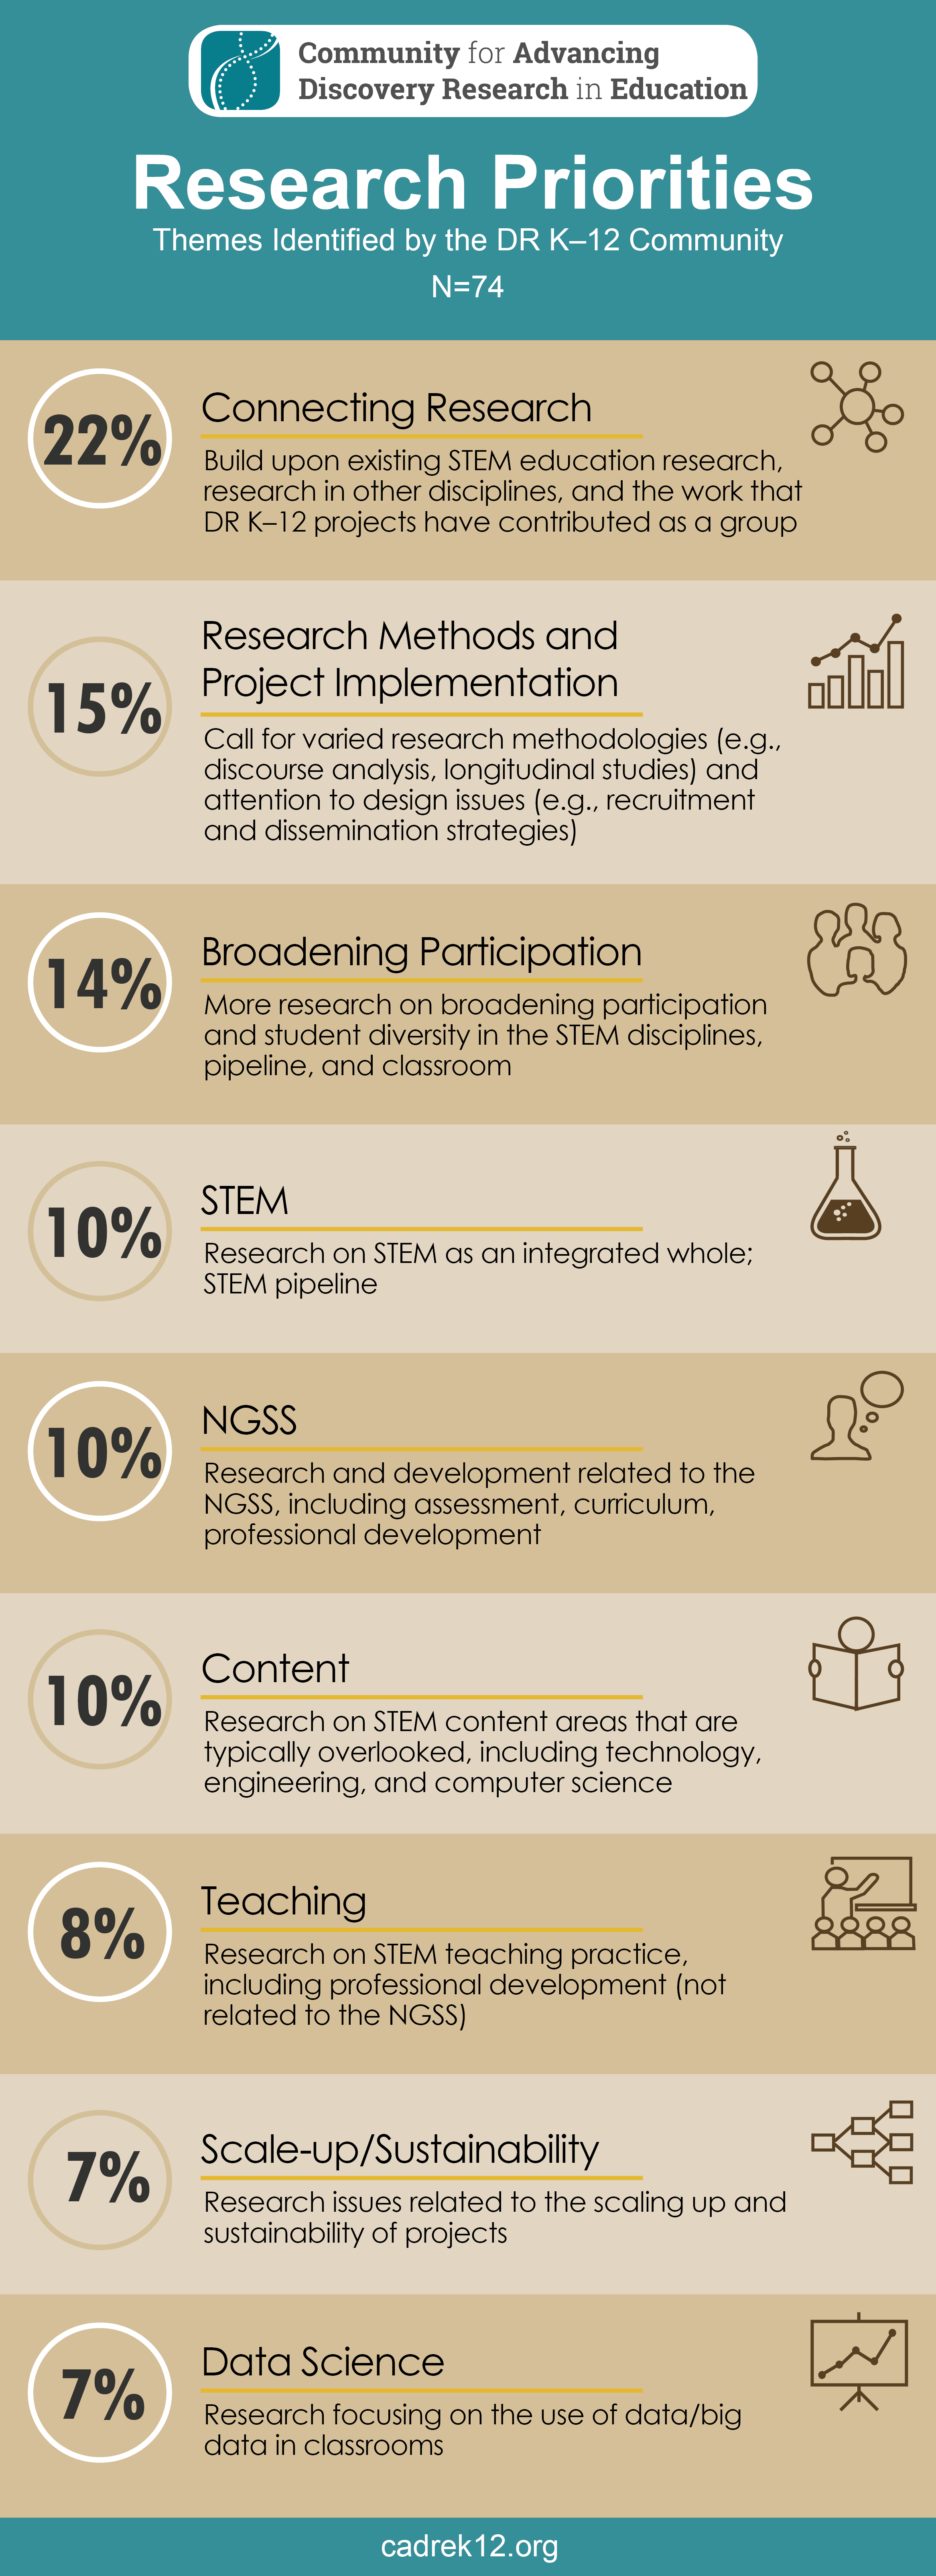 Research Priorities Infographic